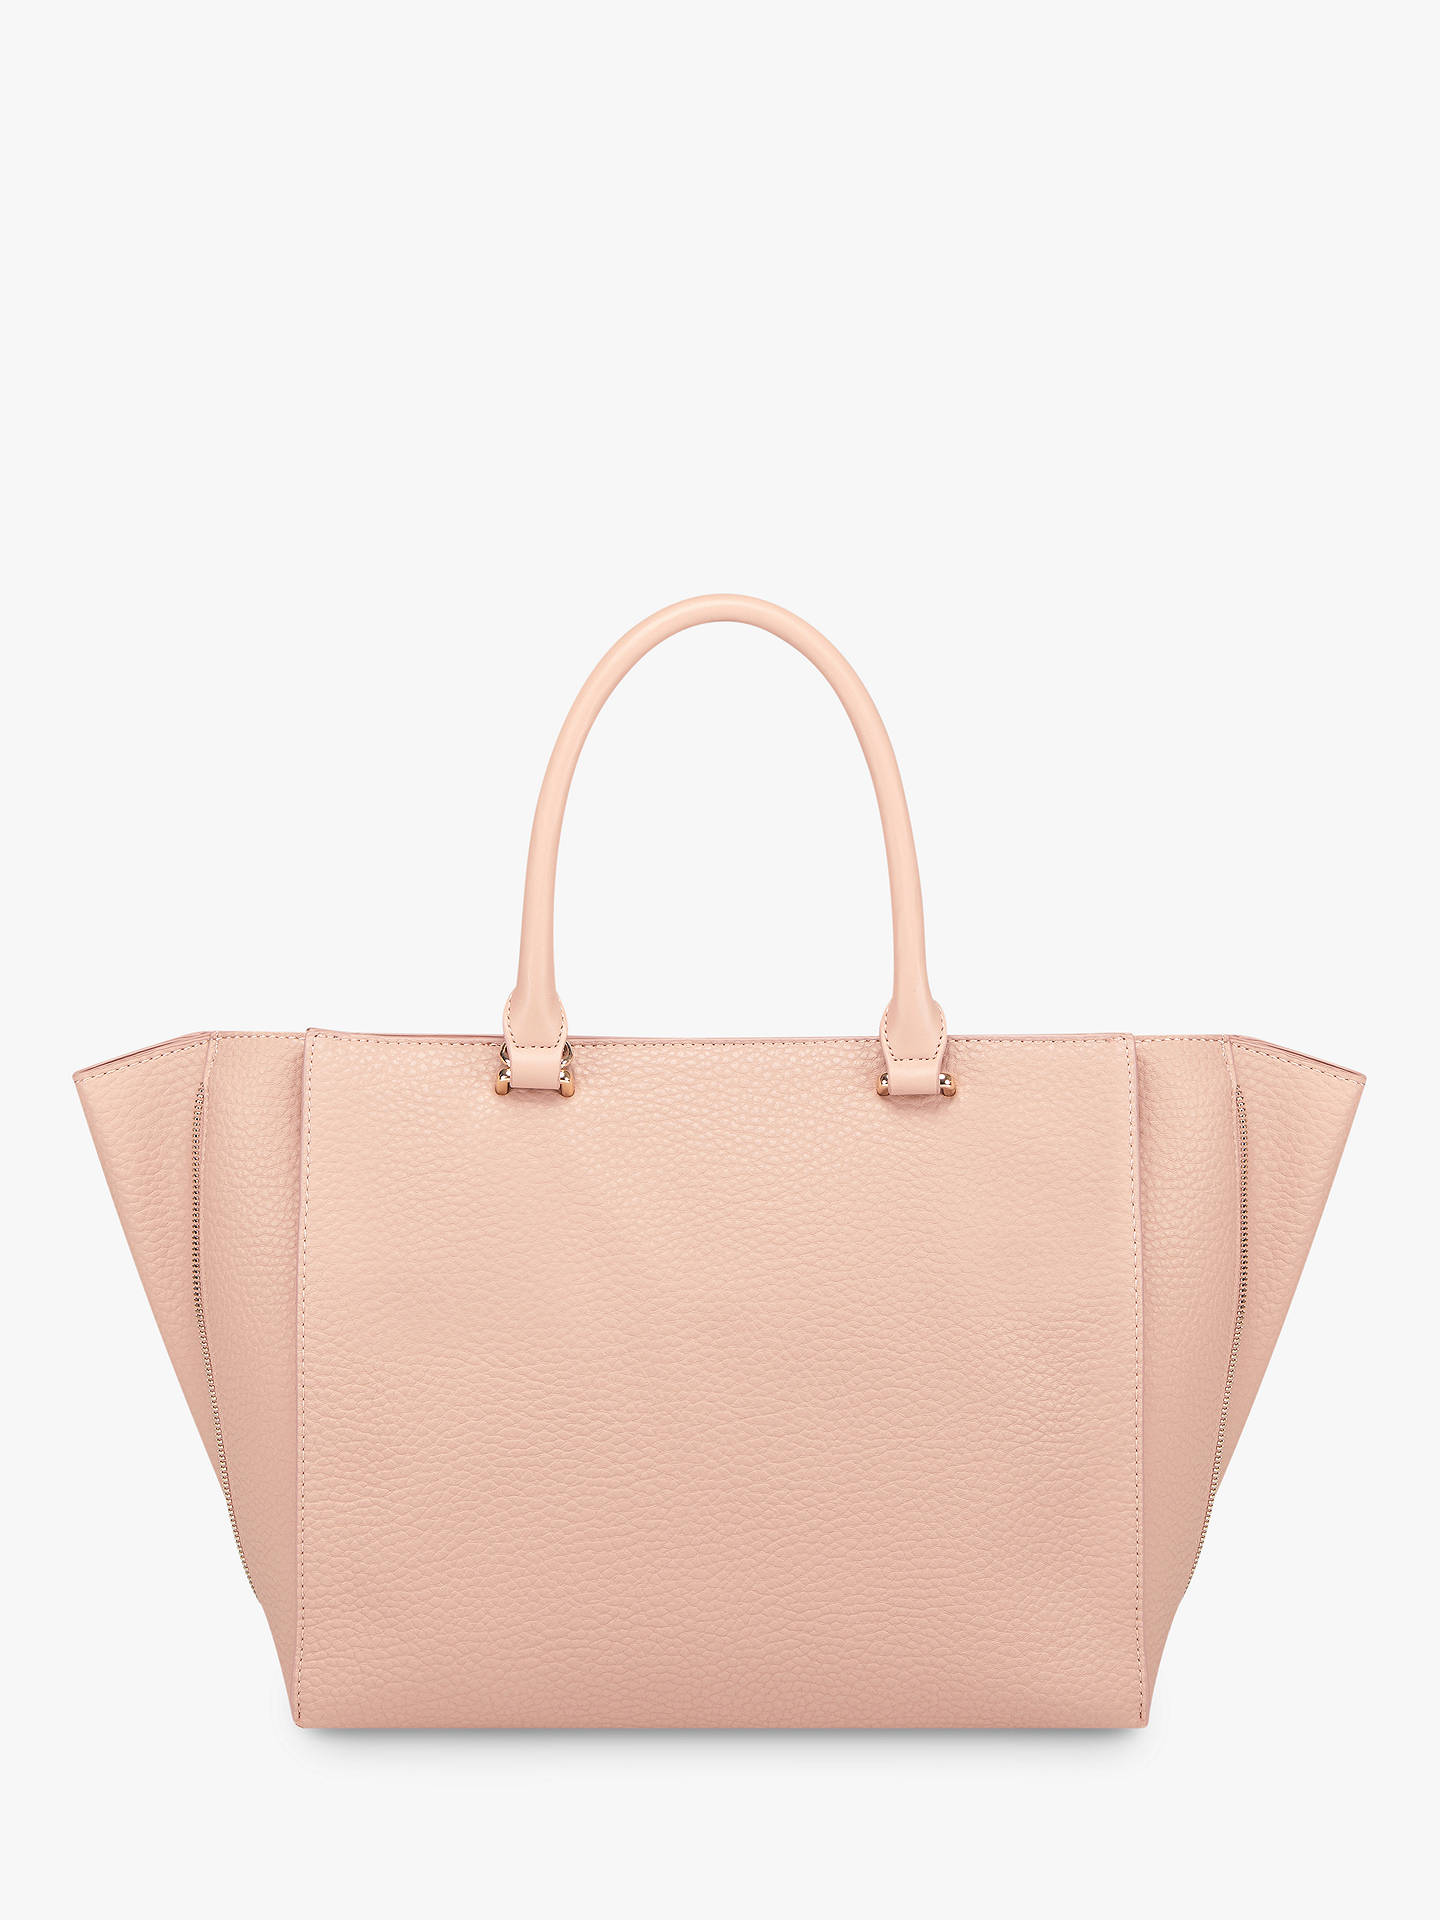 Buy Fiorelli Anna Tote Bag, Rosewater Online at johnlewis.com